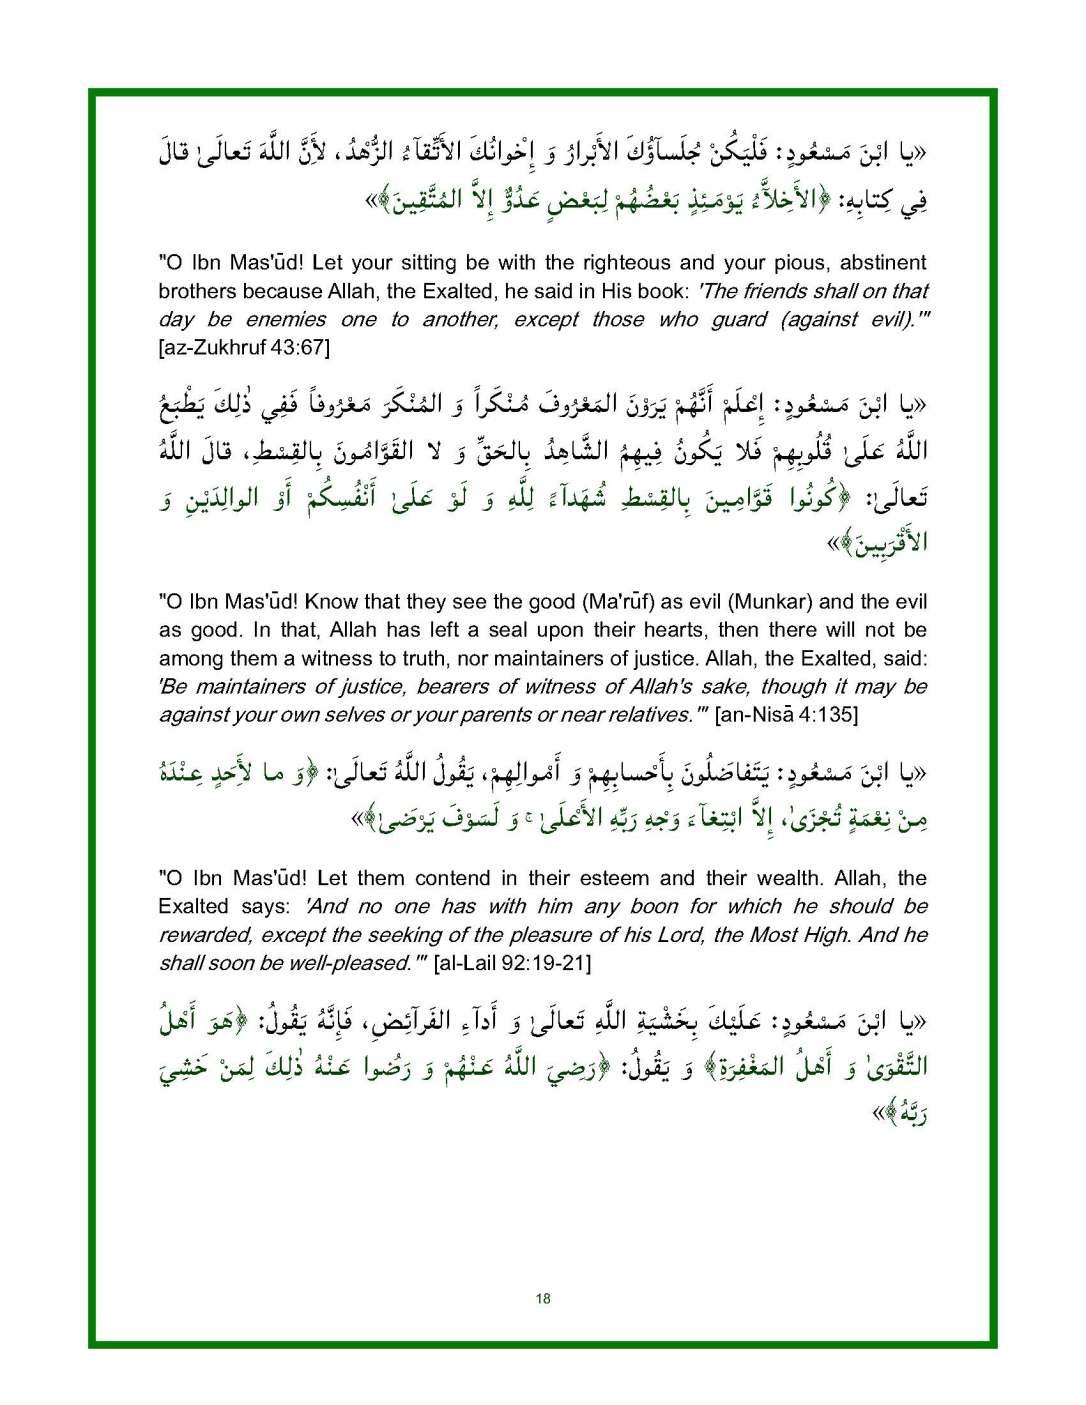 Spiritual-Advice-of-the-Messenger-of-Allah-for-Ibn-Masud-unlocked_Page_18